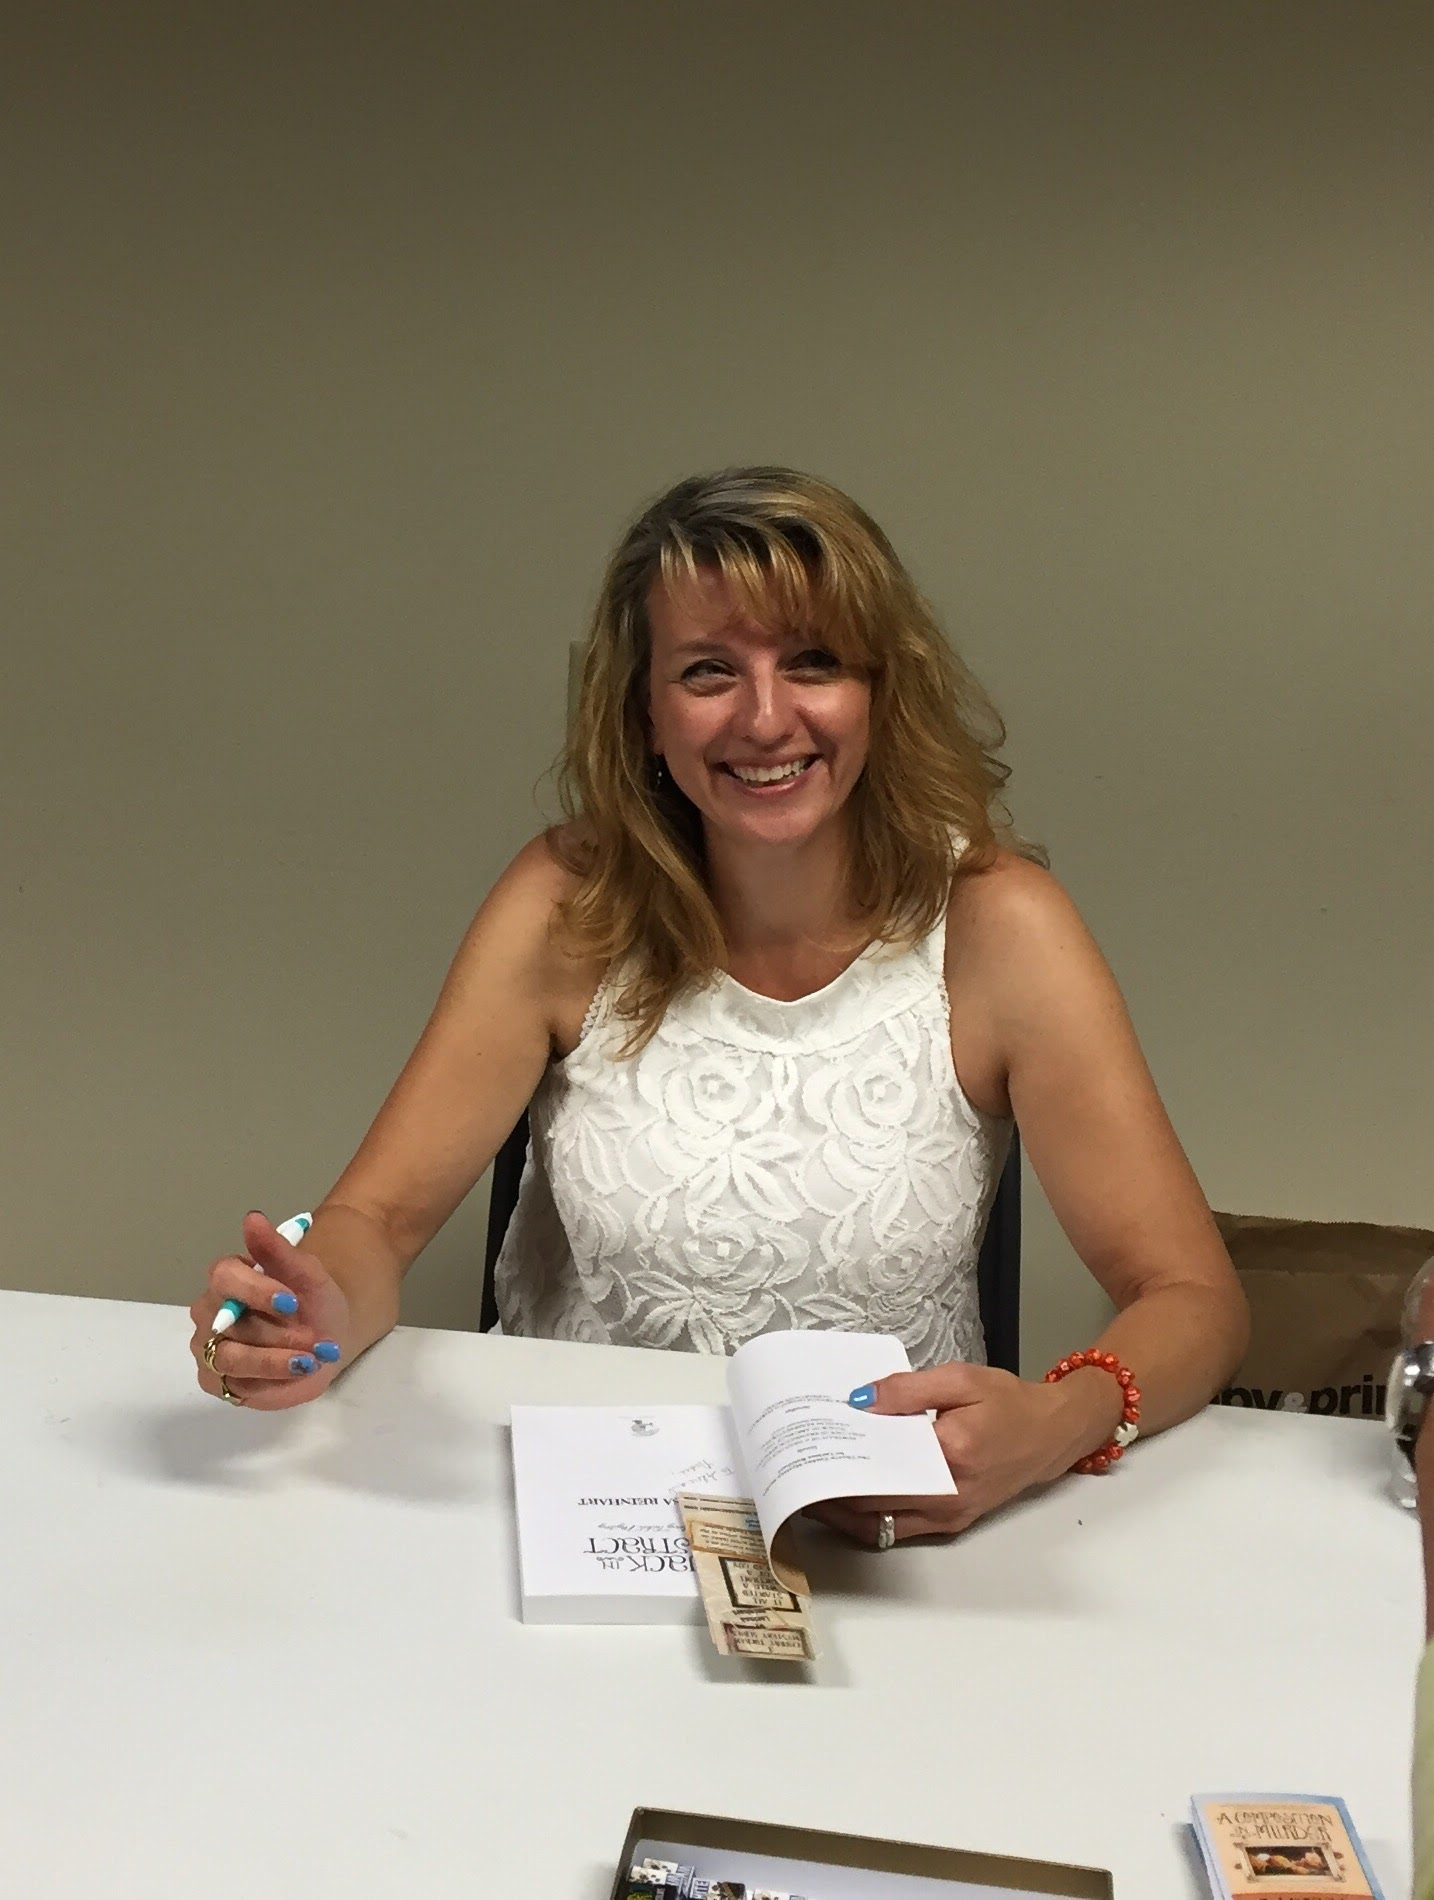 Larissa Reinhart at East Moline Library event